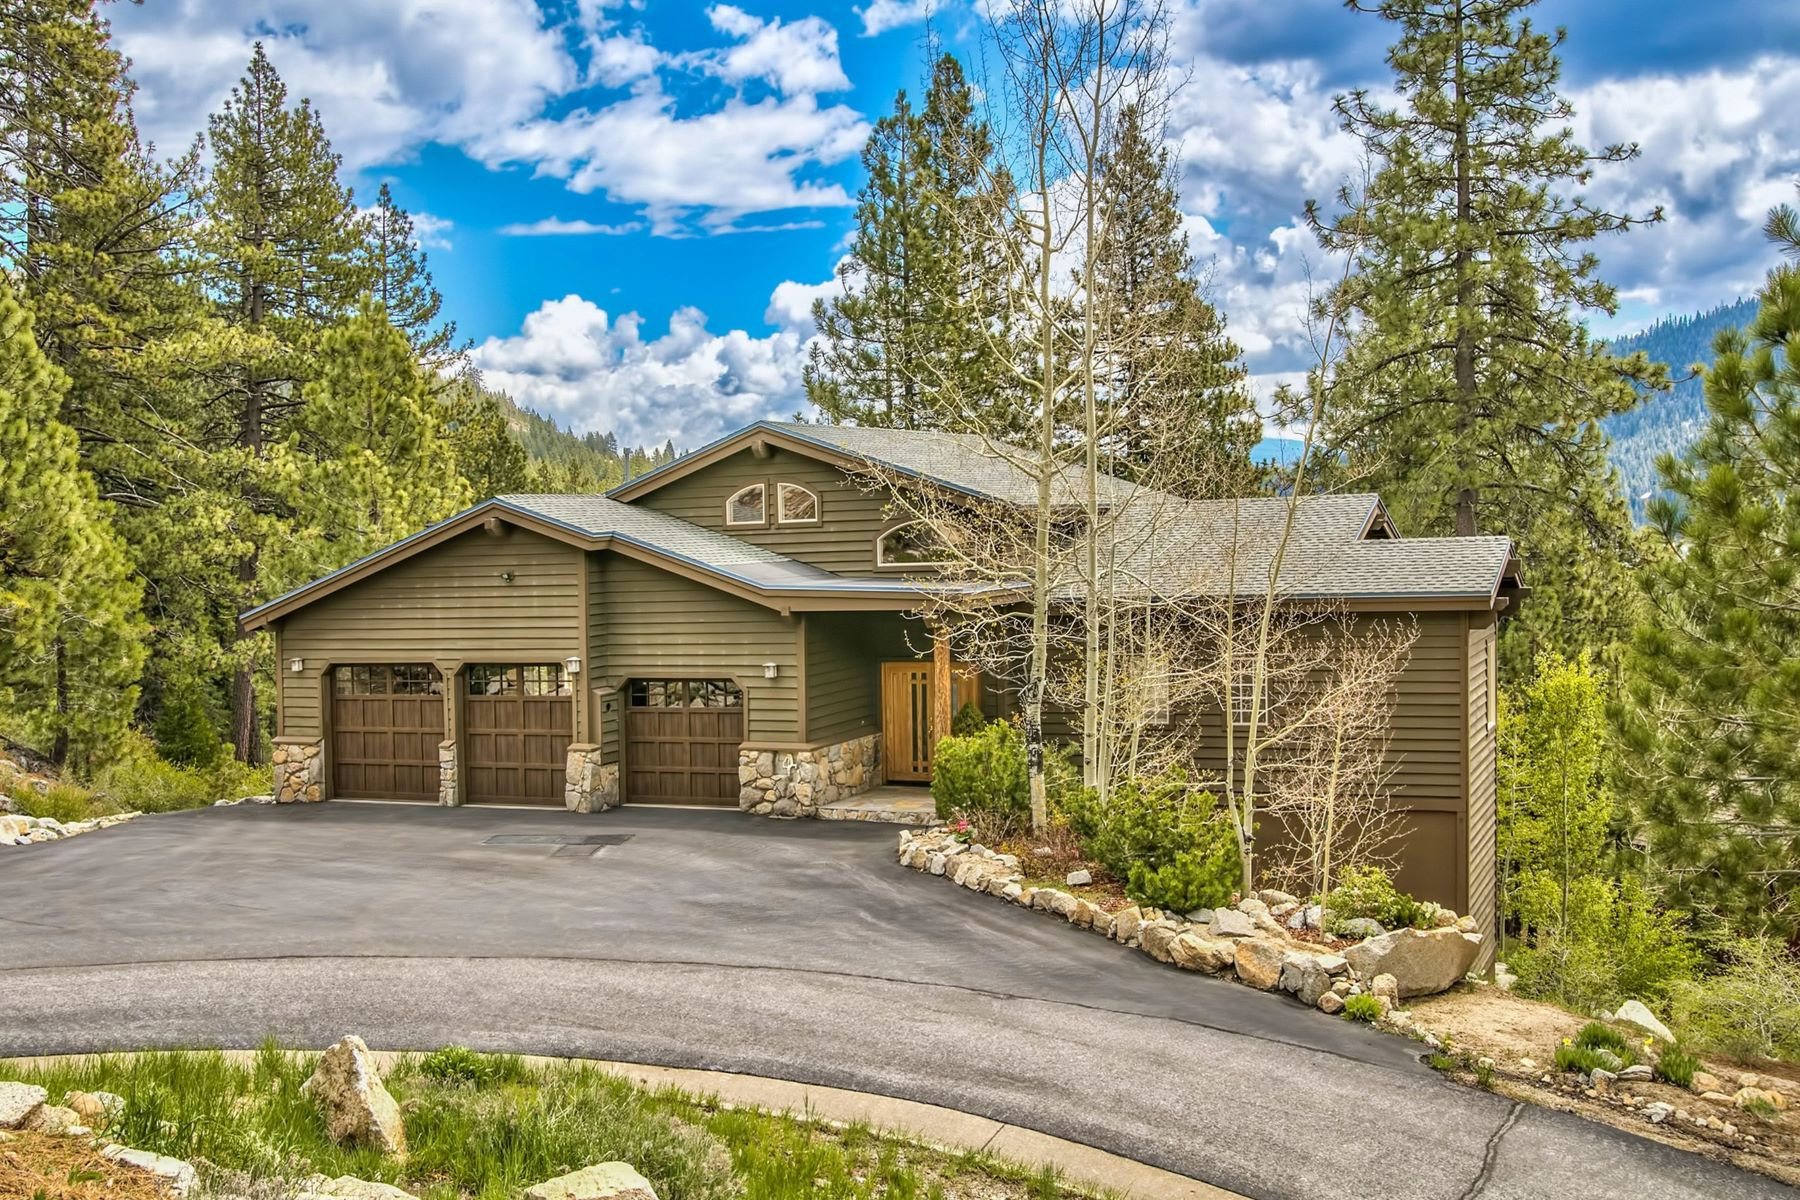 Single Family Homes for Active at Quiet Sunny Donner Lake 16313 Cinnamon Ridge Place, Truckee, California 96161 United States